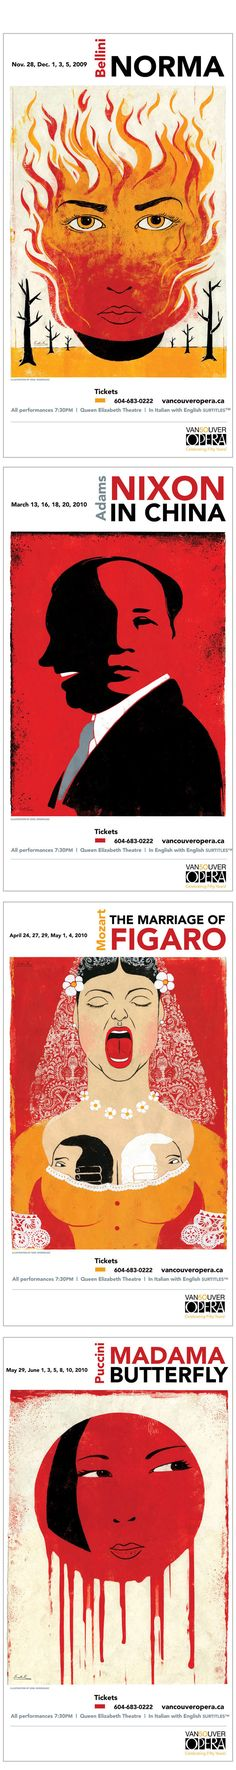 Vancouver Opera posters designed by Edel Rodriguez